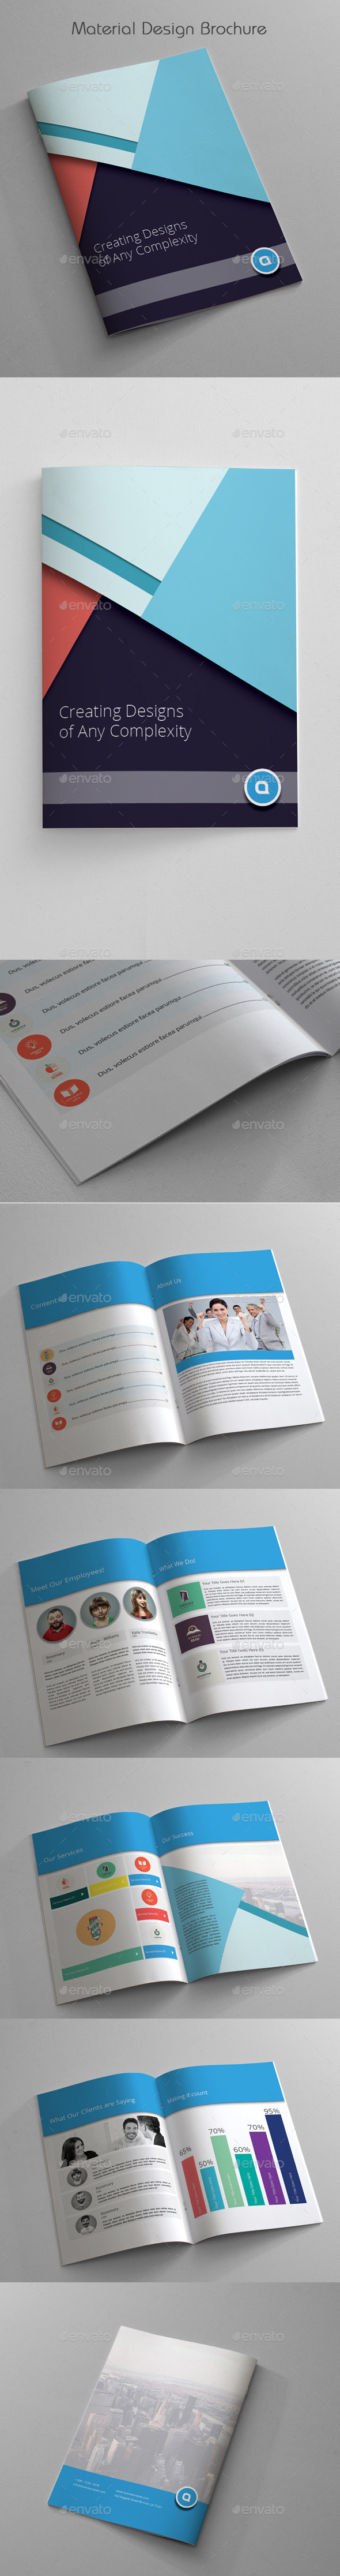 GraphicRiver Material Design Brochure 11090791